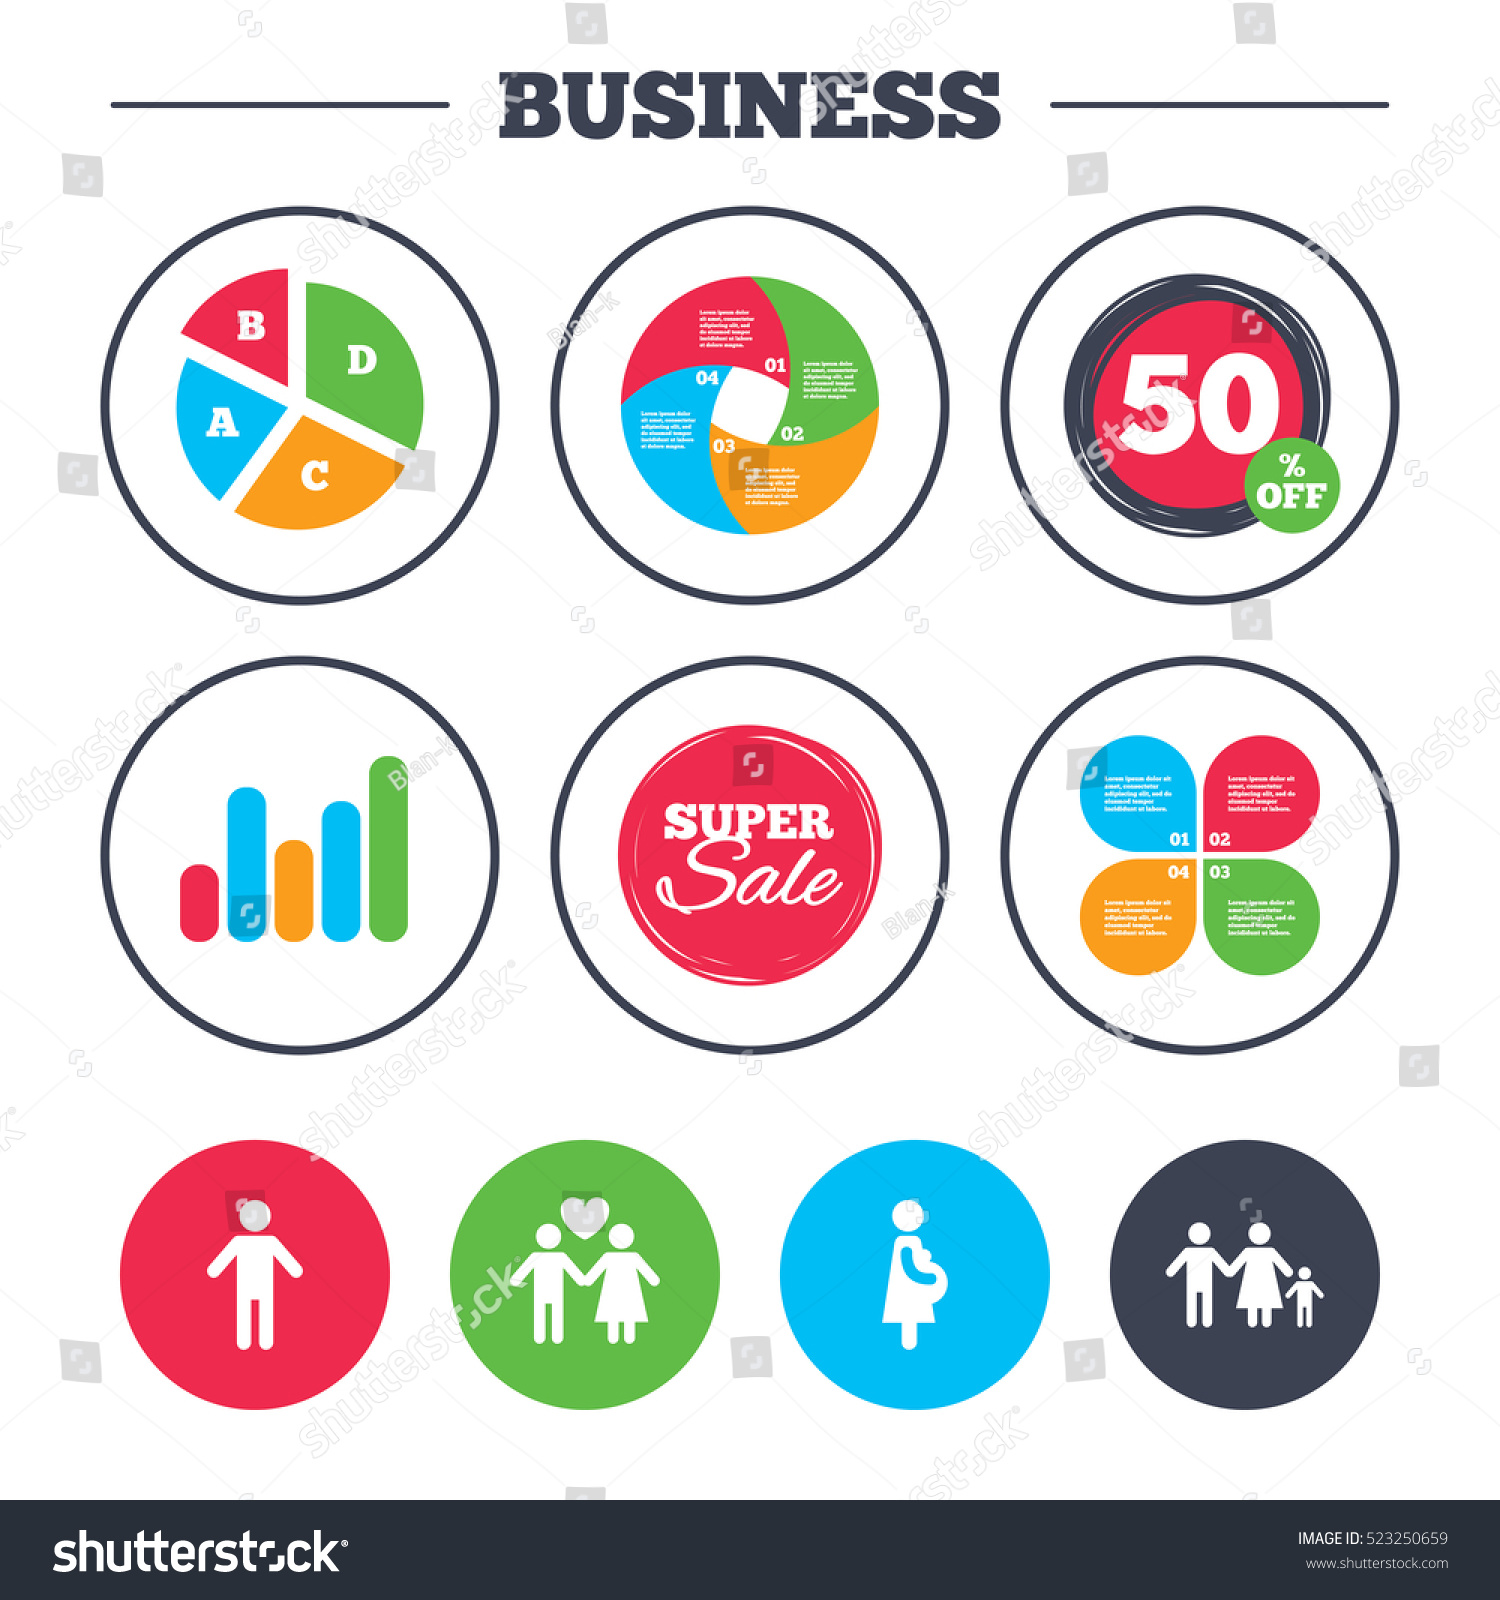 Business pie chart growth graph family stock illustration business pie chart growth graph family lifetime icons couple love pregnancy and nvjuhfo Image collections